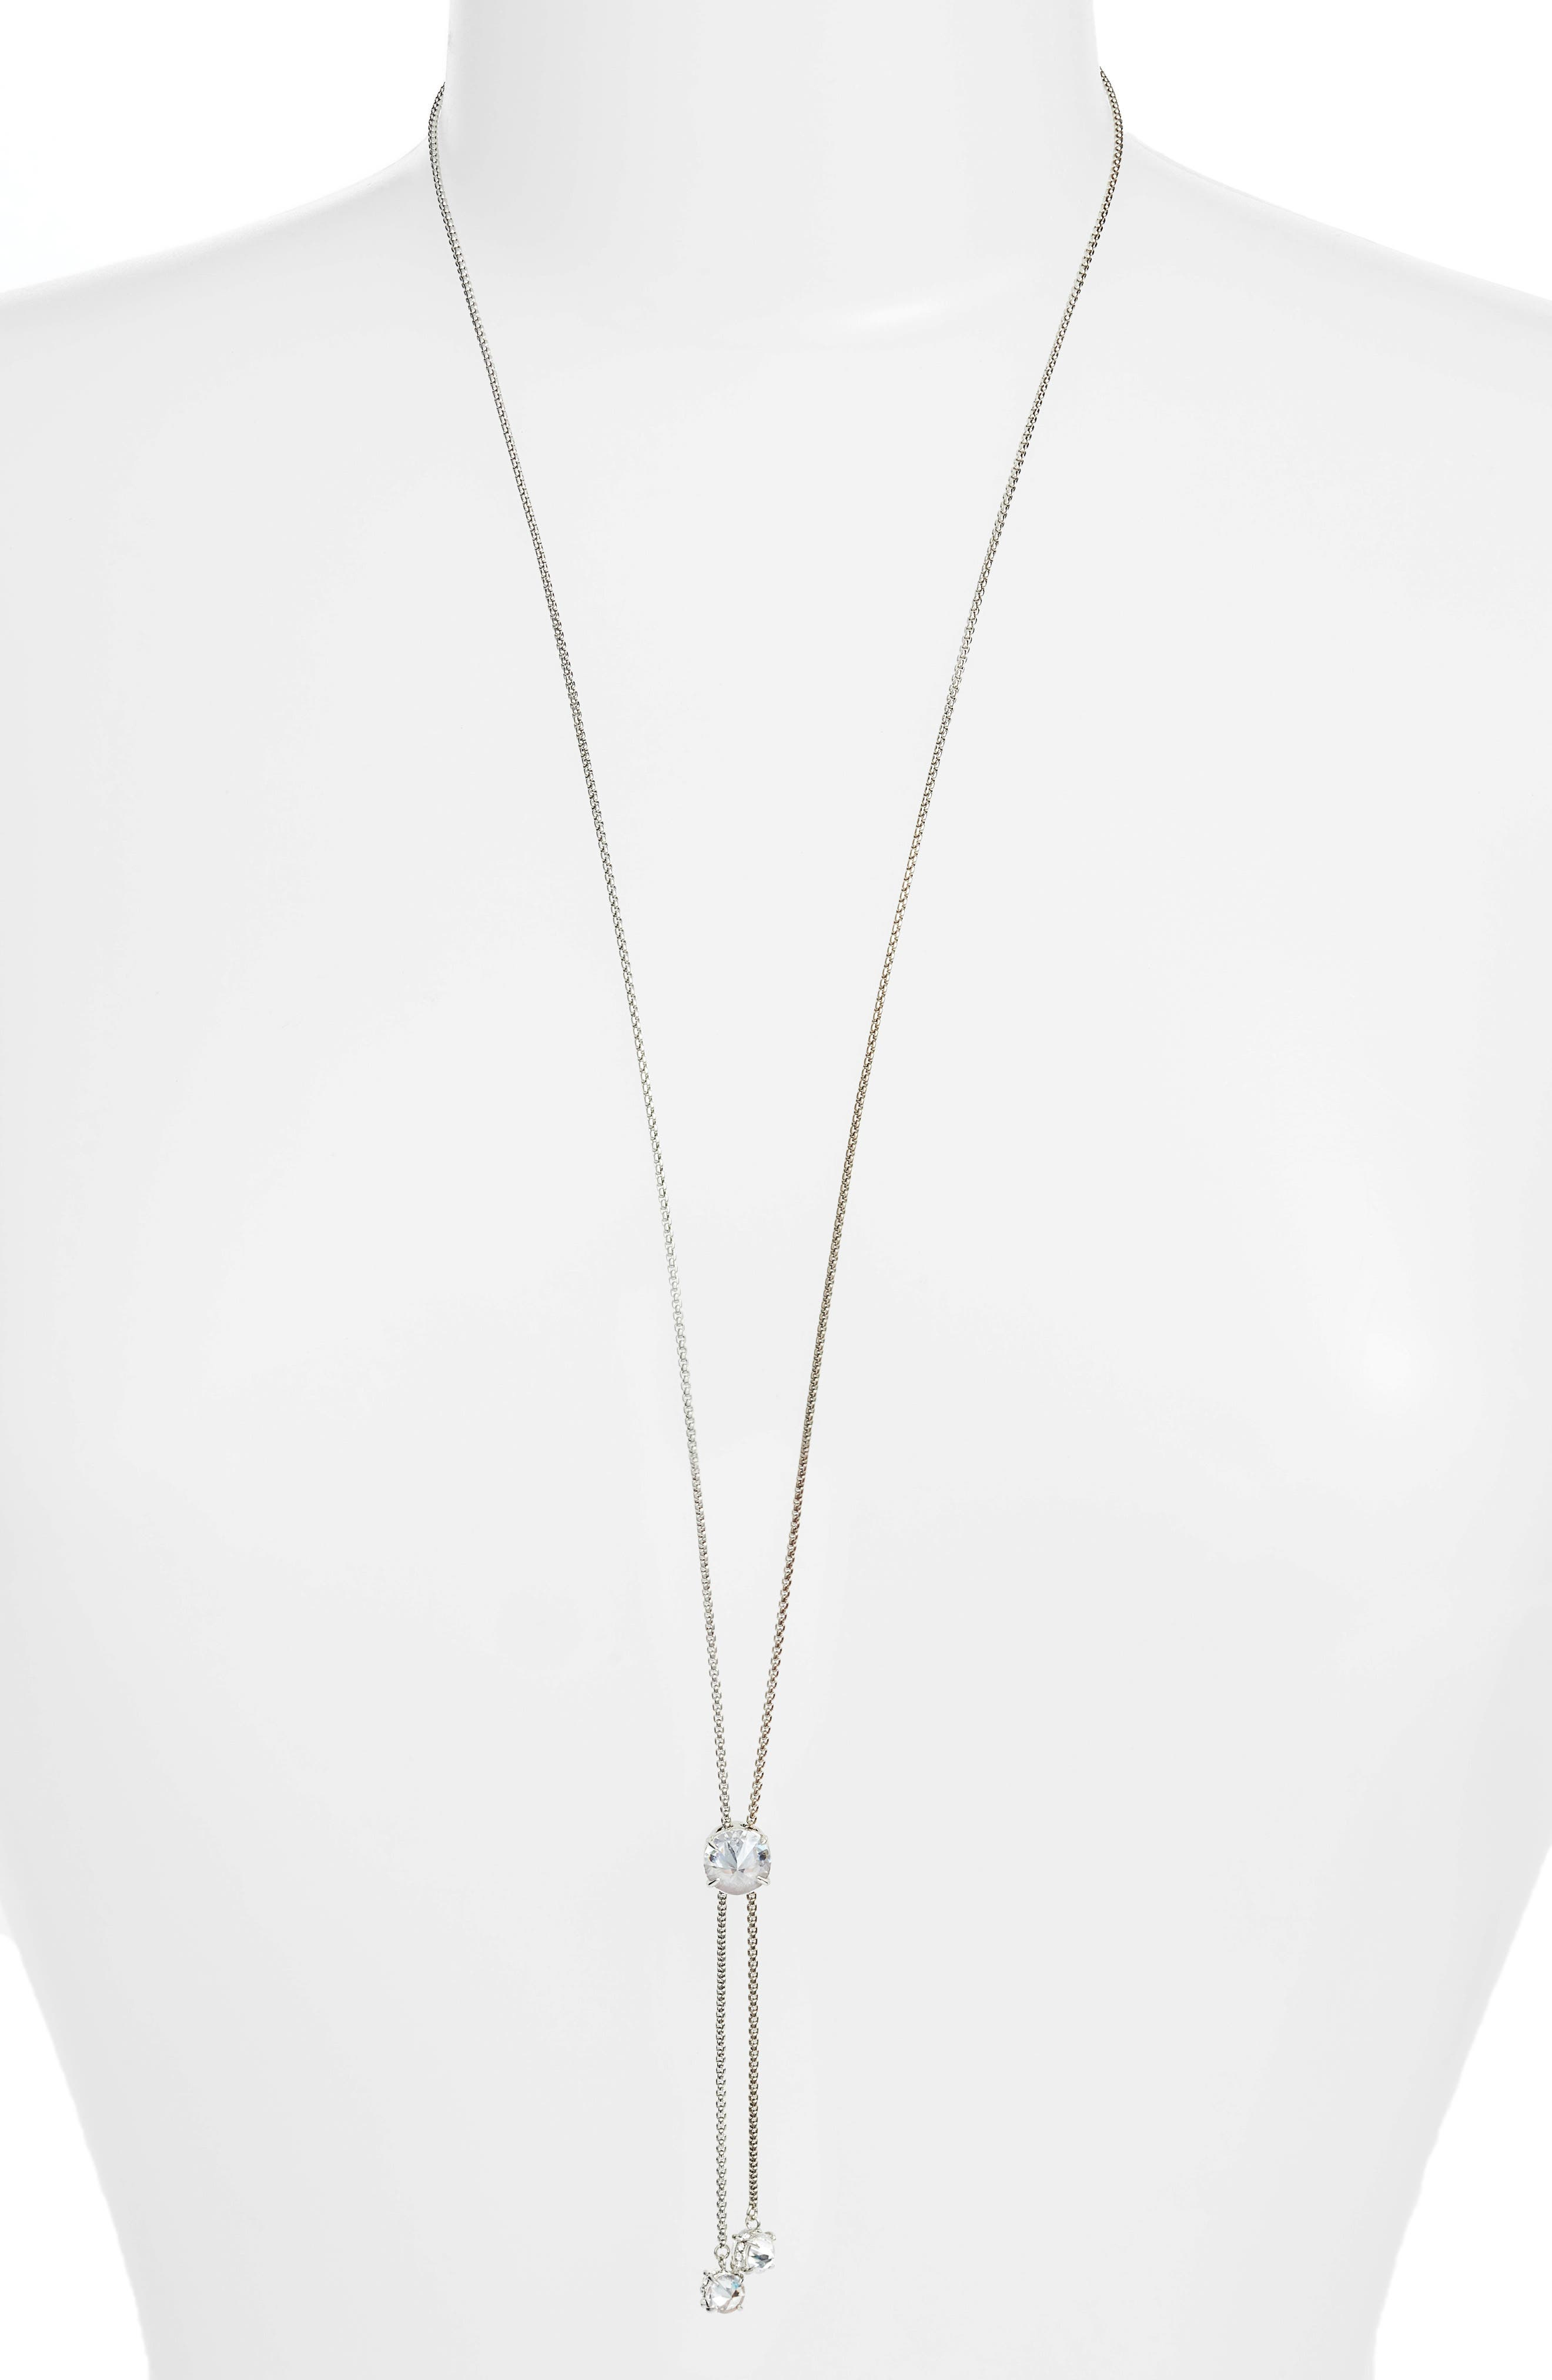 Slider Sparkle Necklace,                         Main,                         color, 041